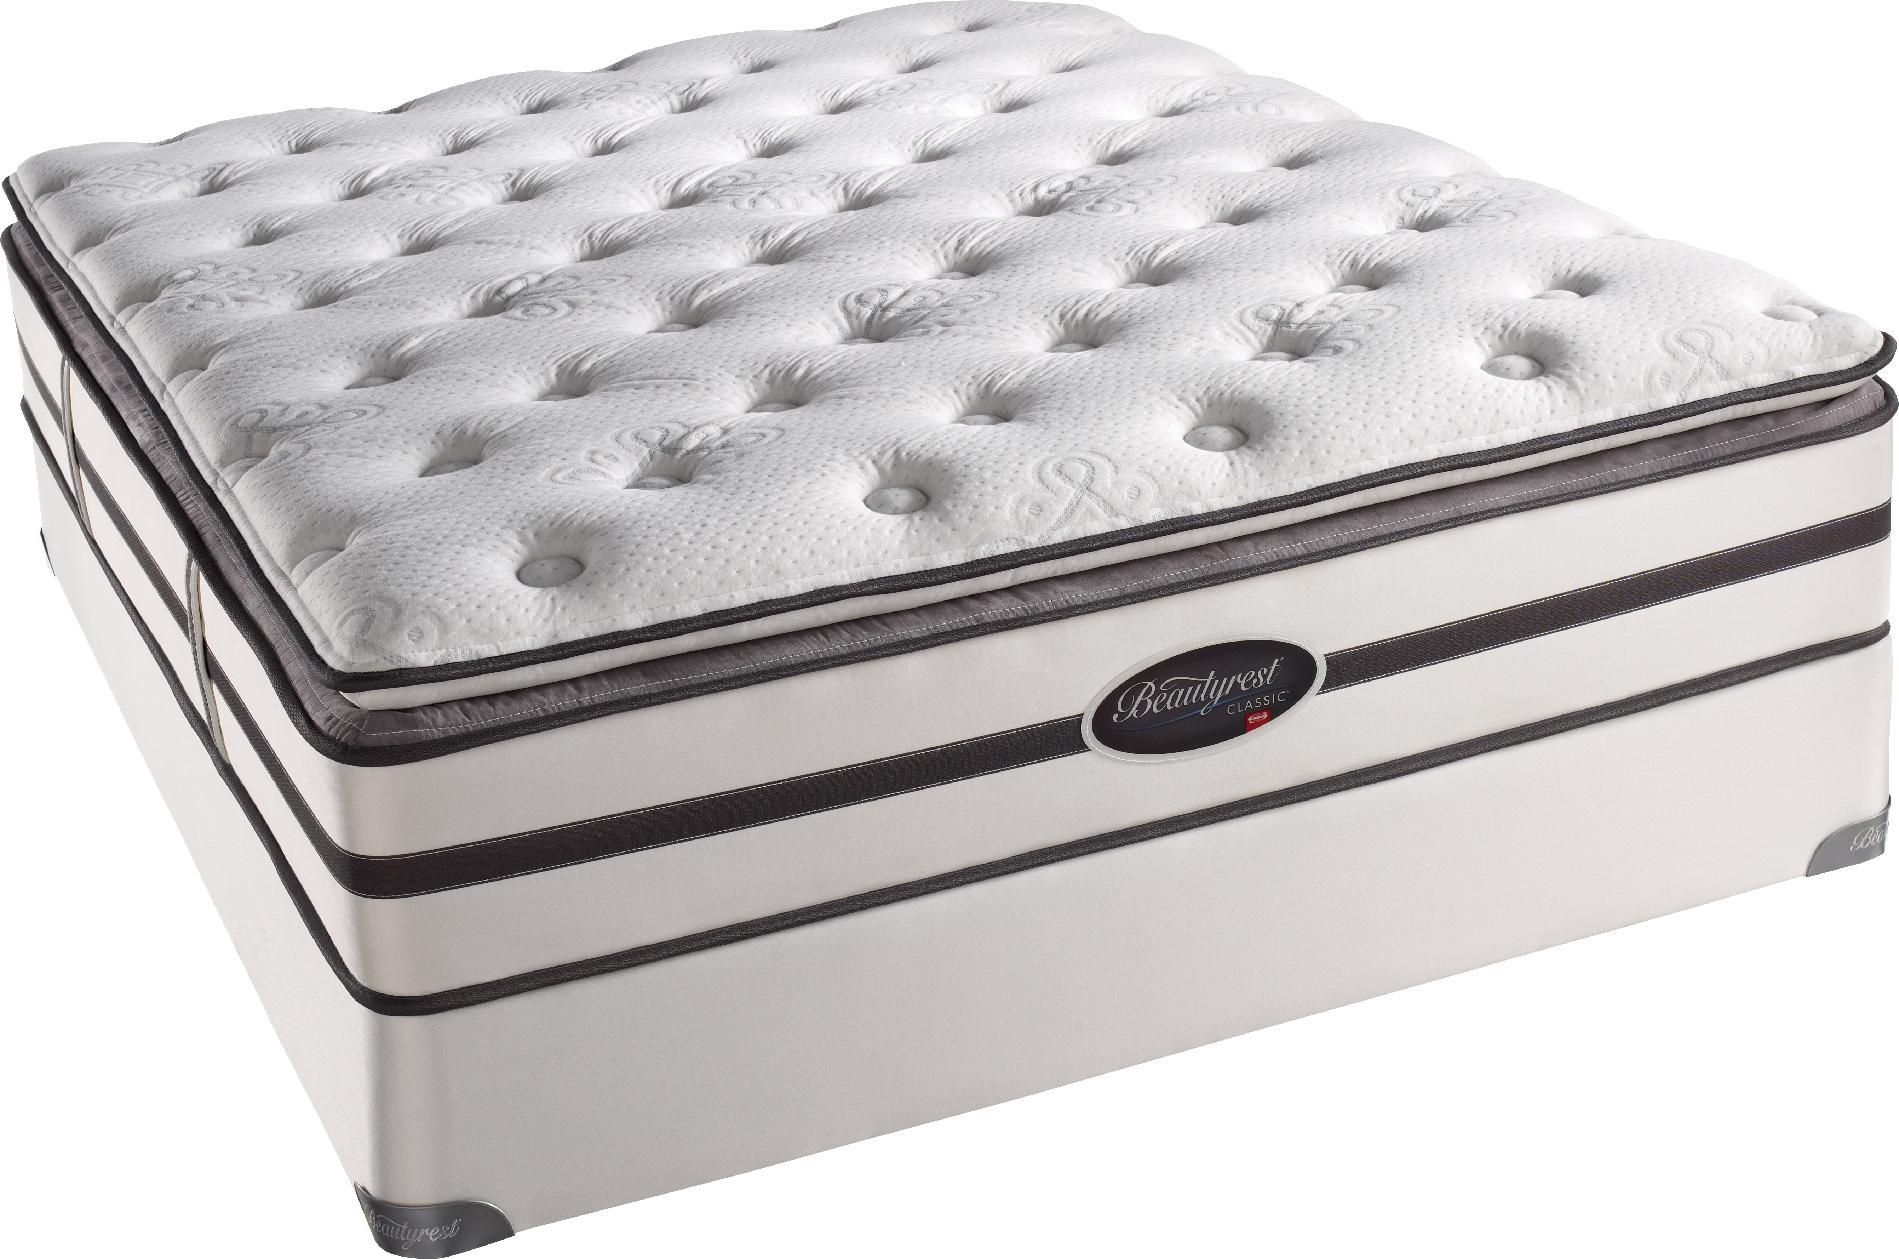 types of mattresses and their advantages disadvantages best